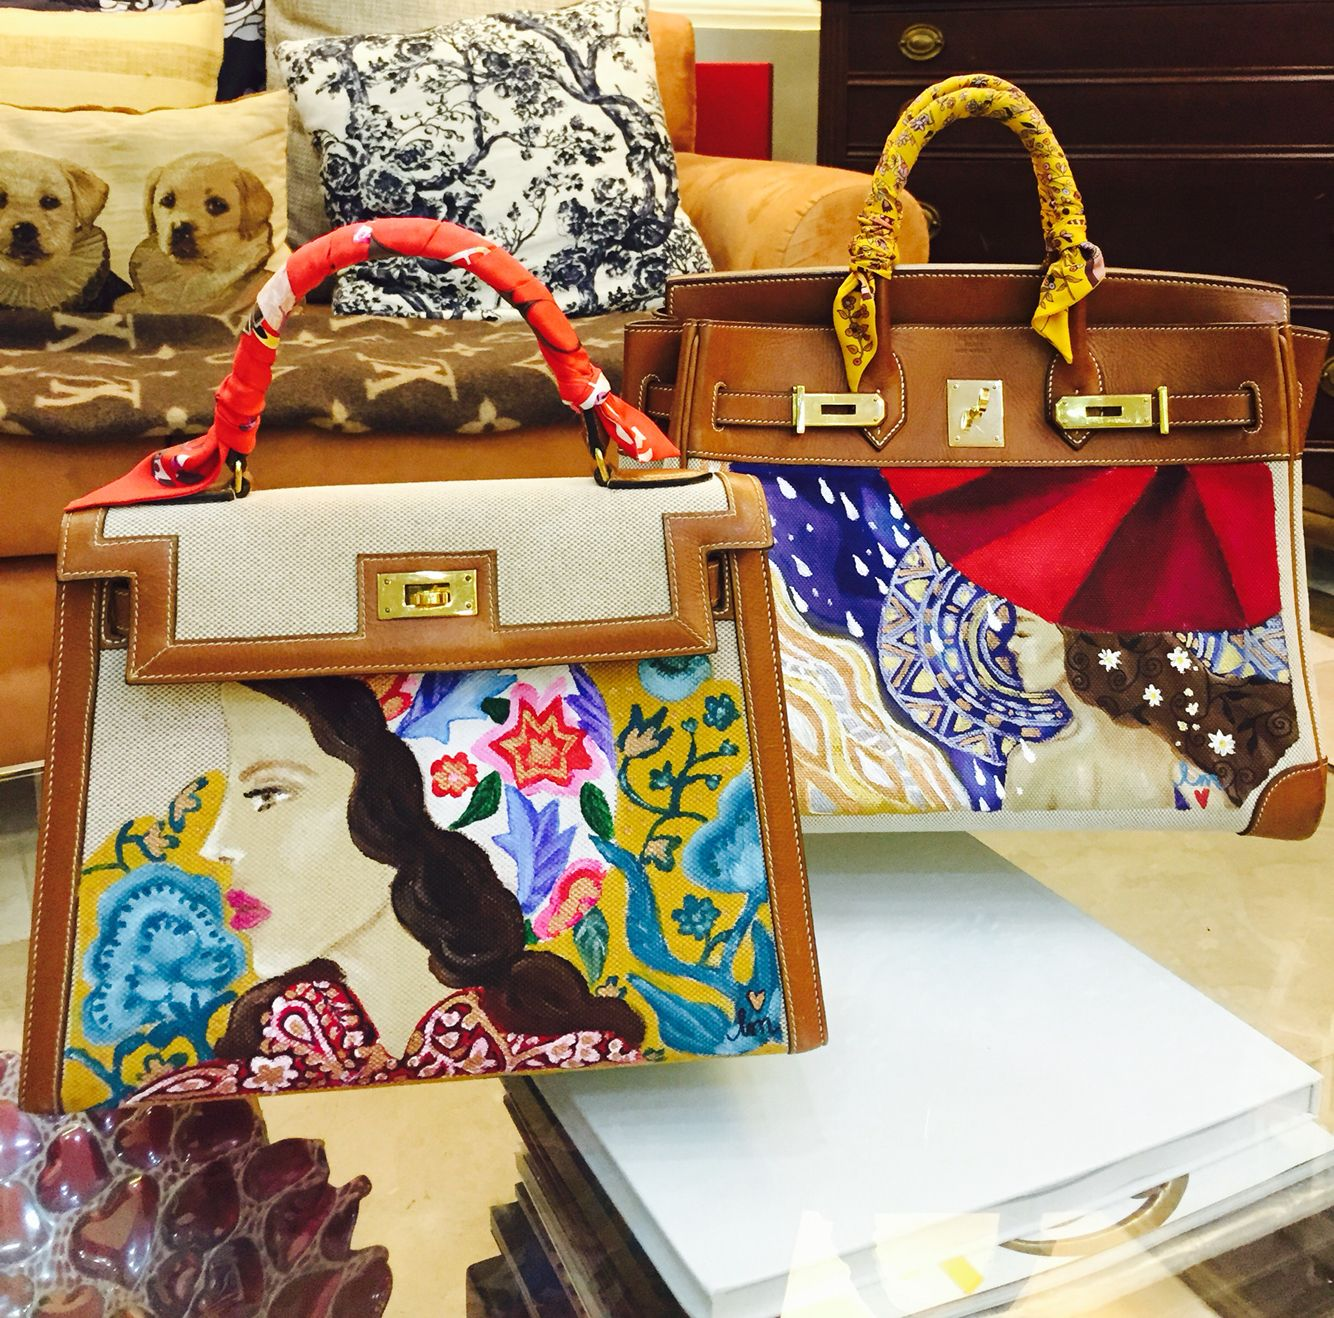 f4dfdf13875d Hand painted Hermes bags by artist love Marie aka heart  evangelista-Escudero ❤️